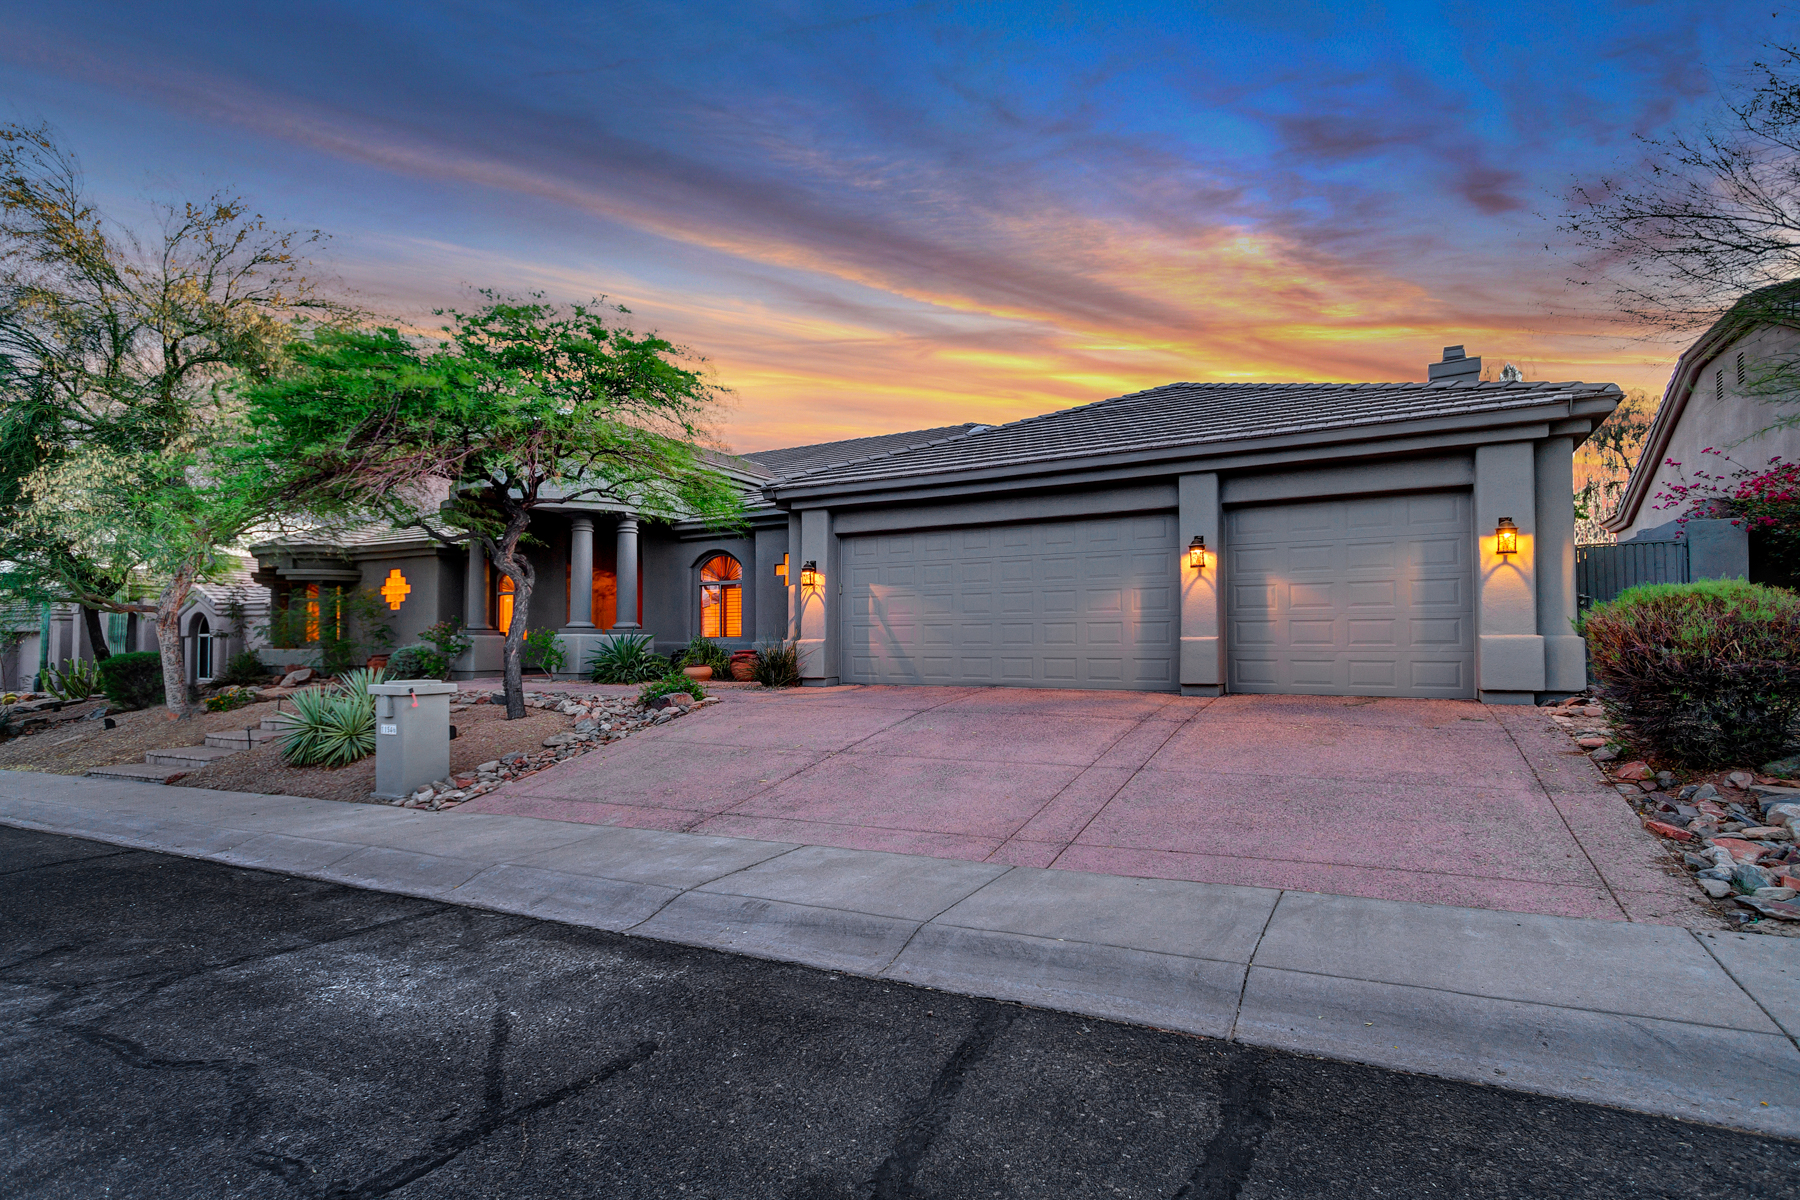 11546 N 128TH PL SCOTTSDALE AZ 85259